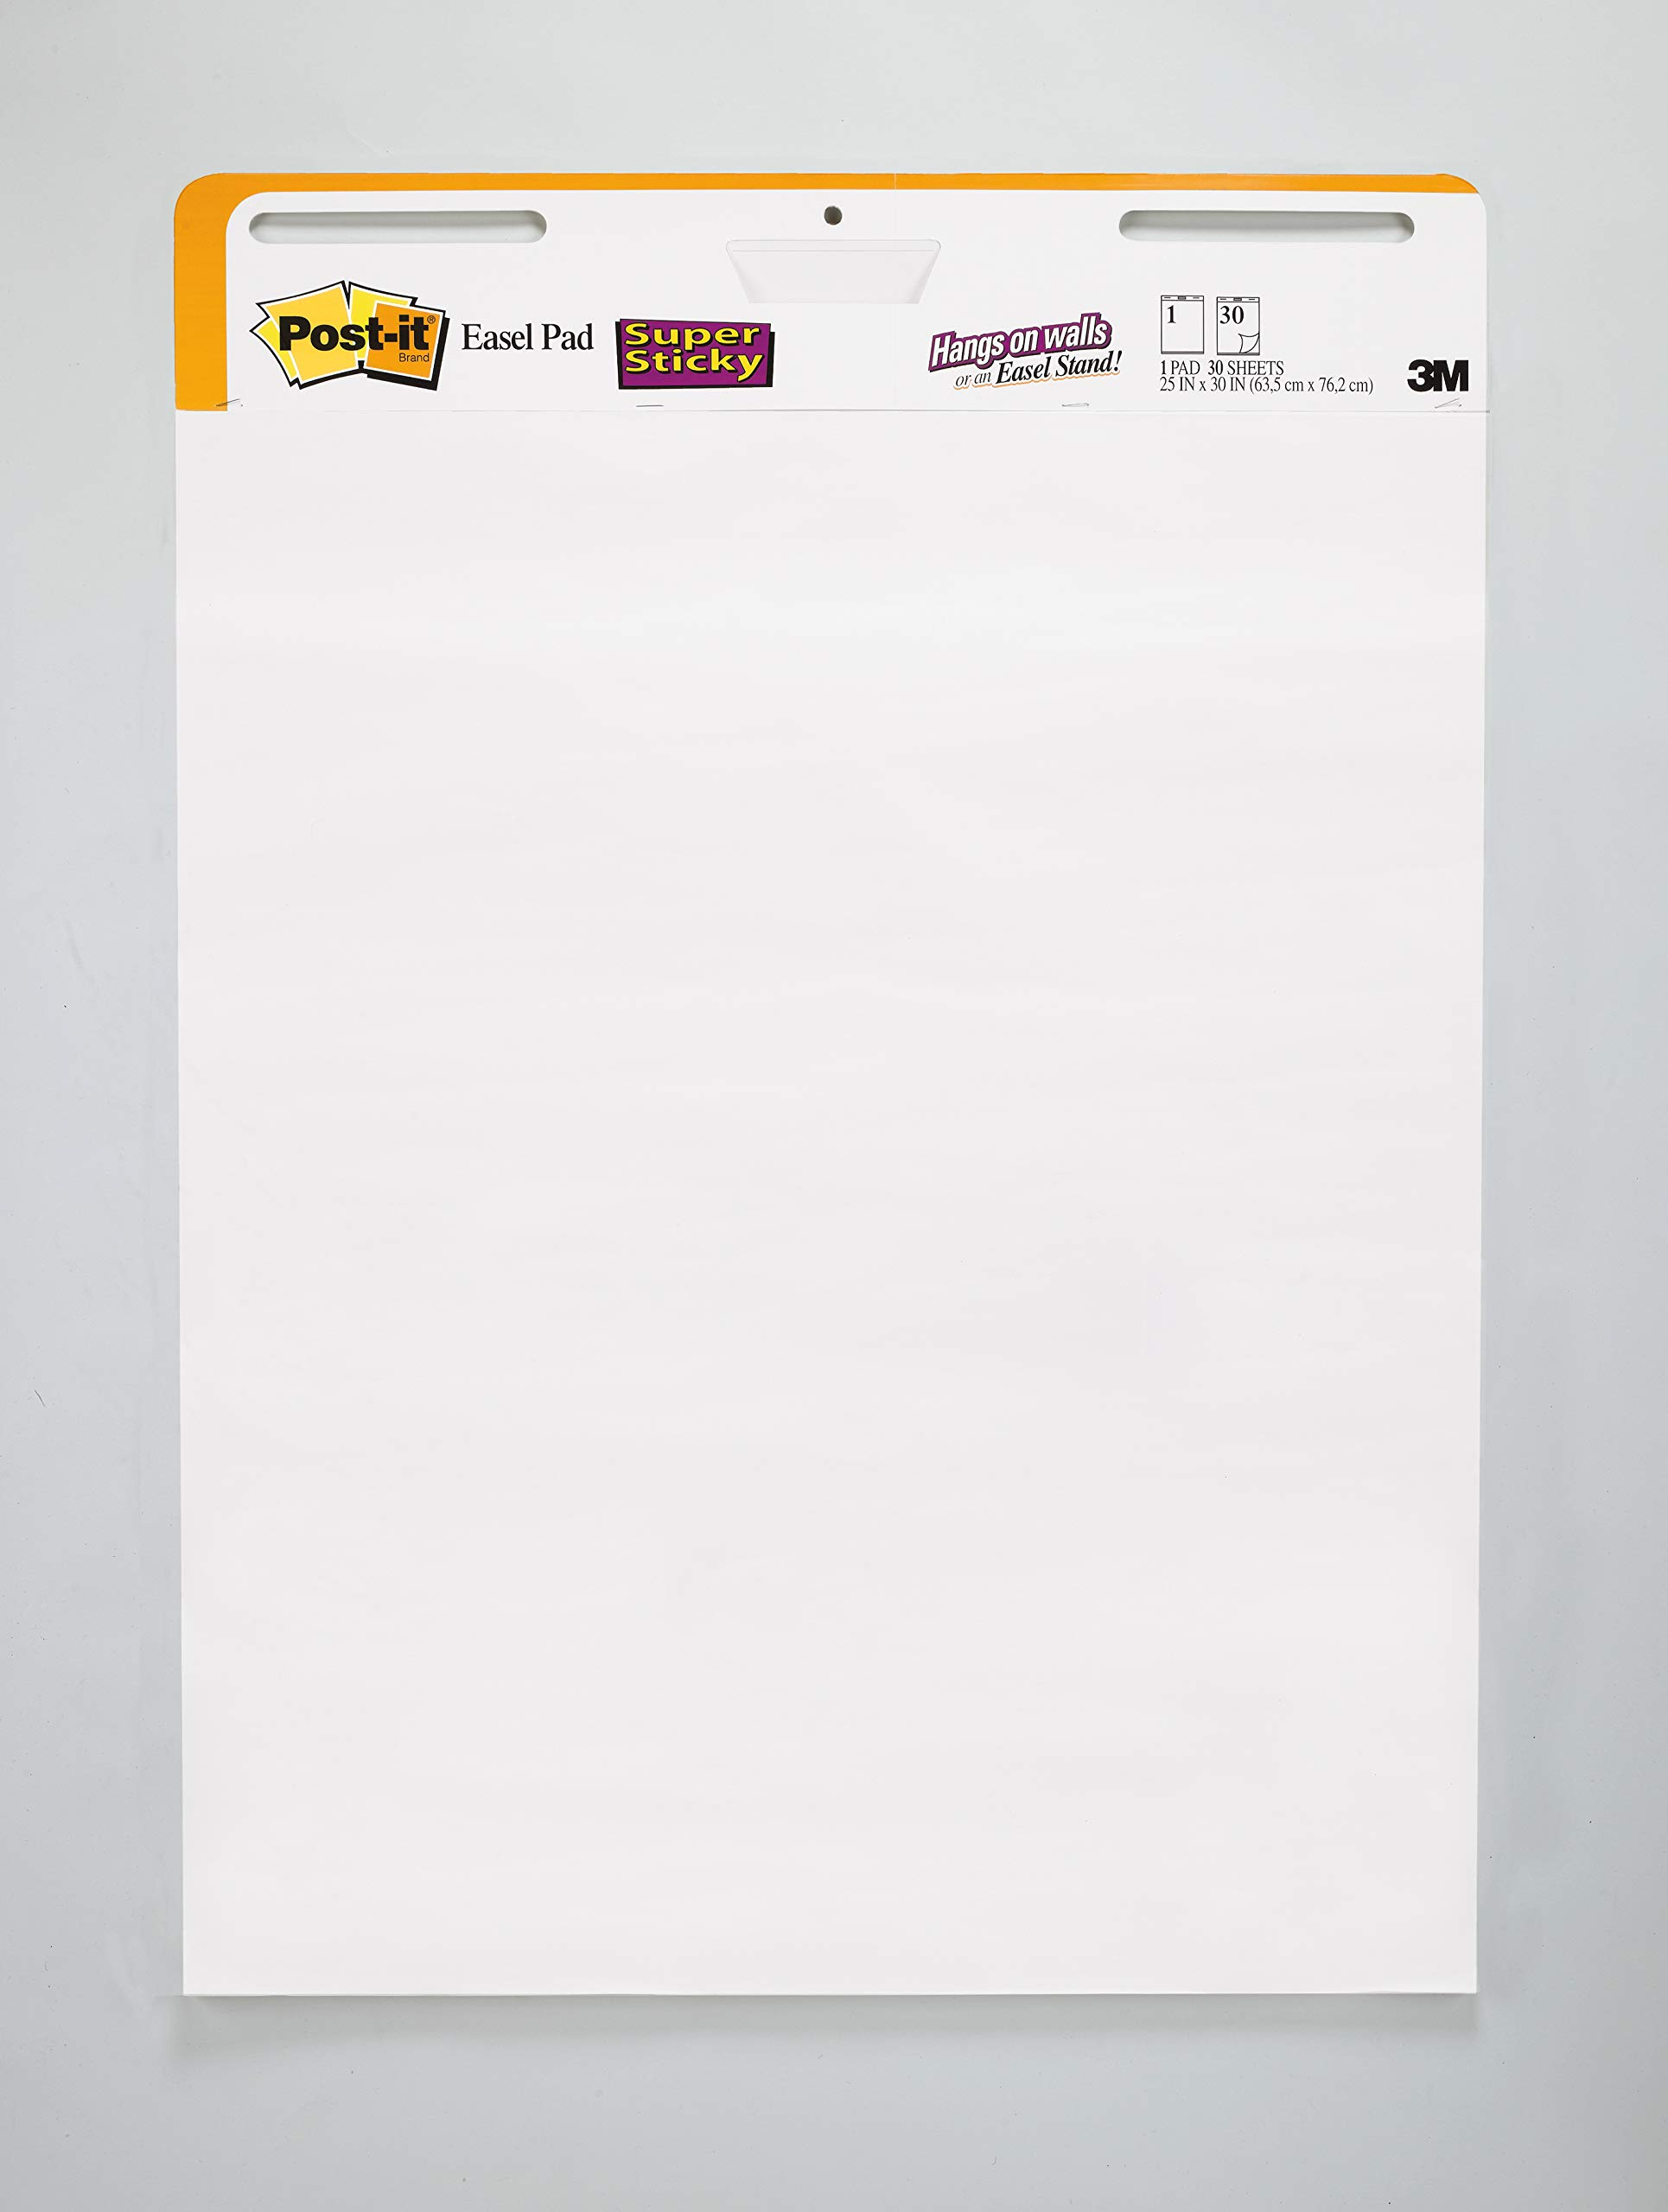 Post-it Super Sticky Easel Pad, 25 x 30 Inches, 30 Sheets/Pad, 2 Pads (559 STB), Large White Premium Self Stick Flip Chart Paper, Rolls for Portability, Hangs with Command Strips by Post-it